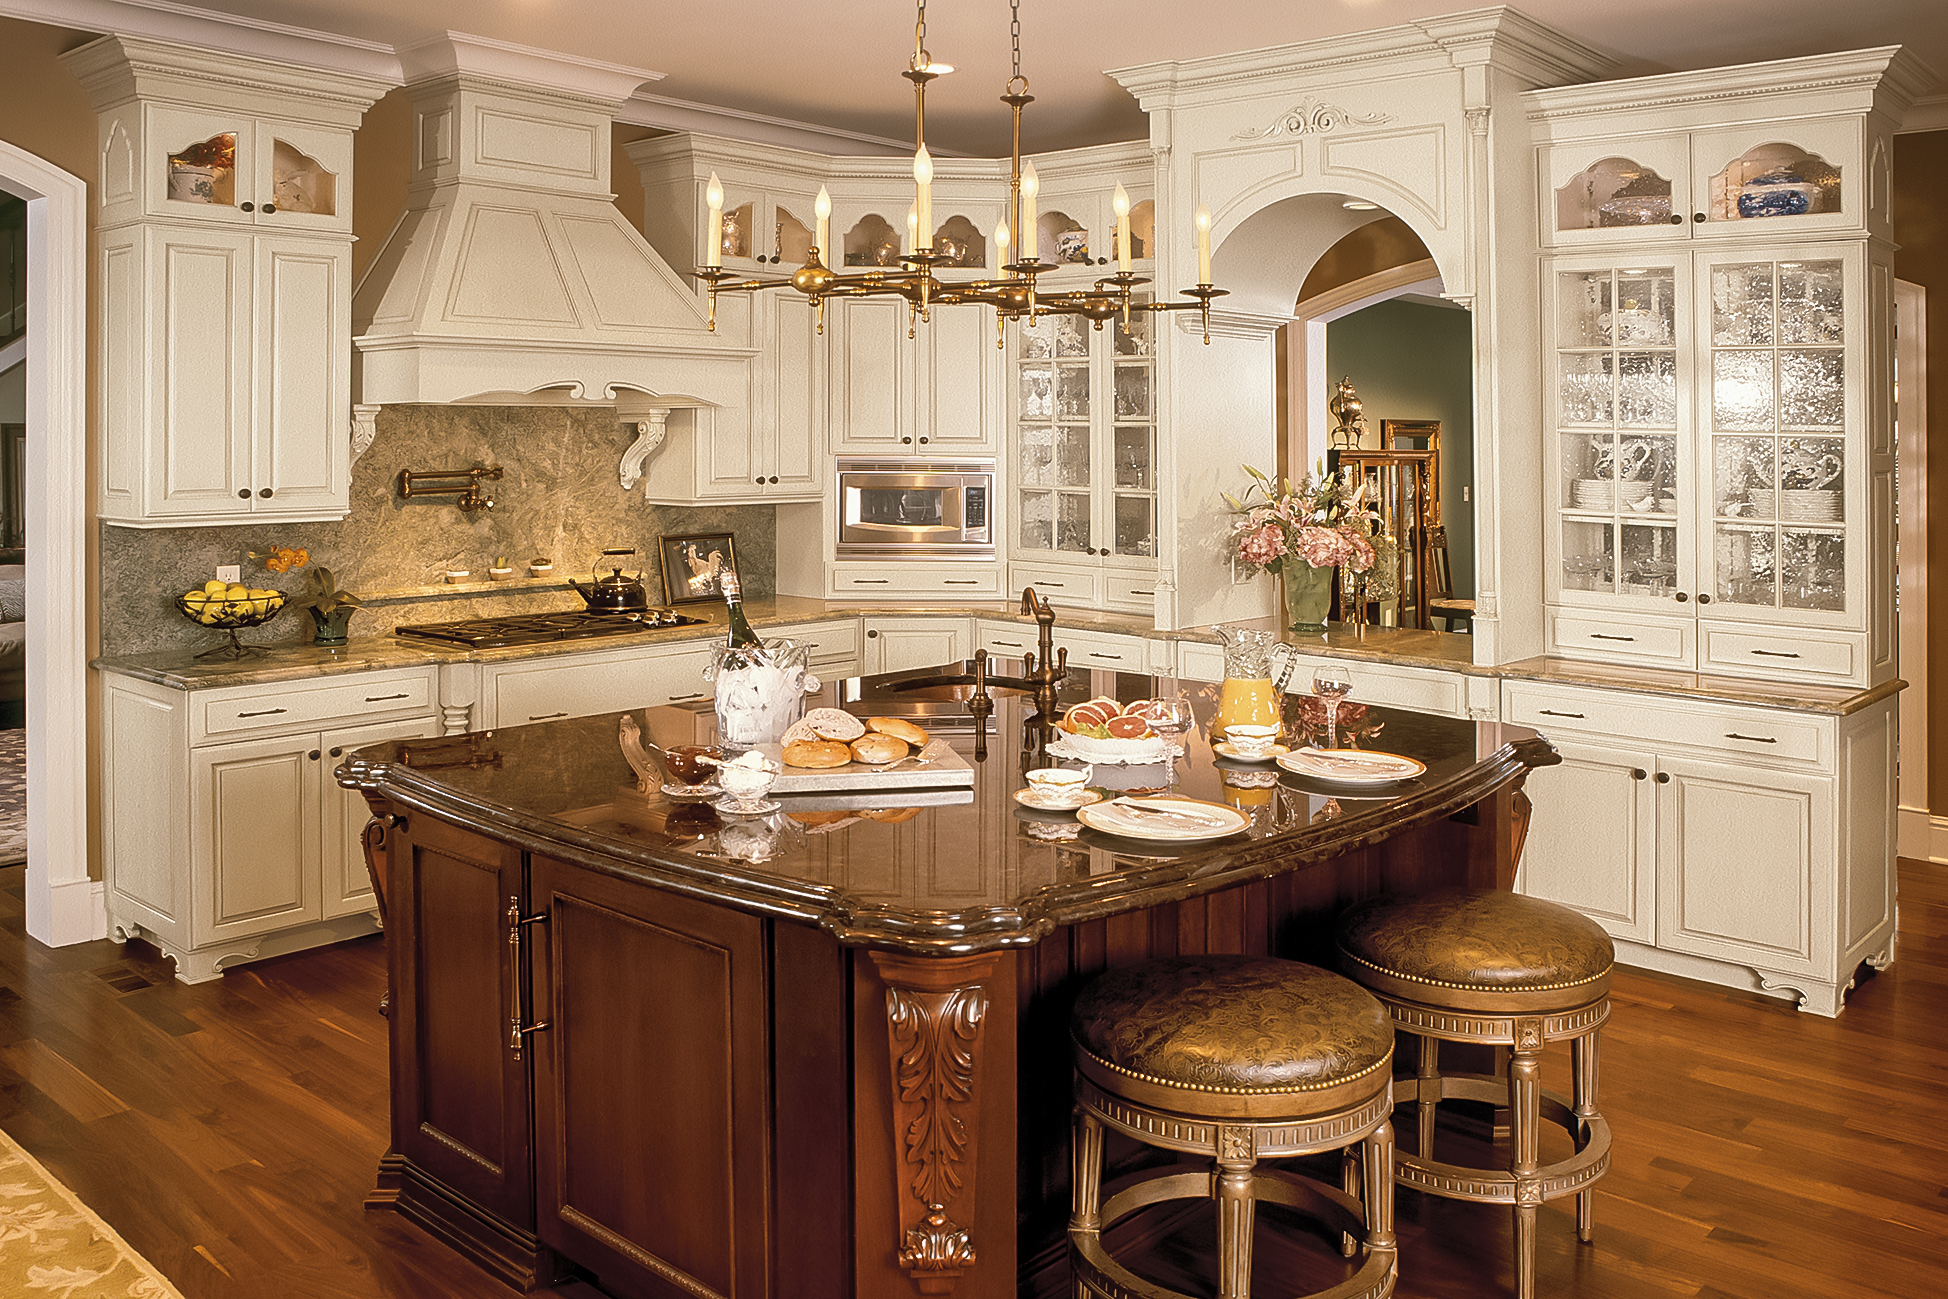 omega kitchen cabinets best tile for dynasty cabinetry north shore ma derry nh